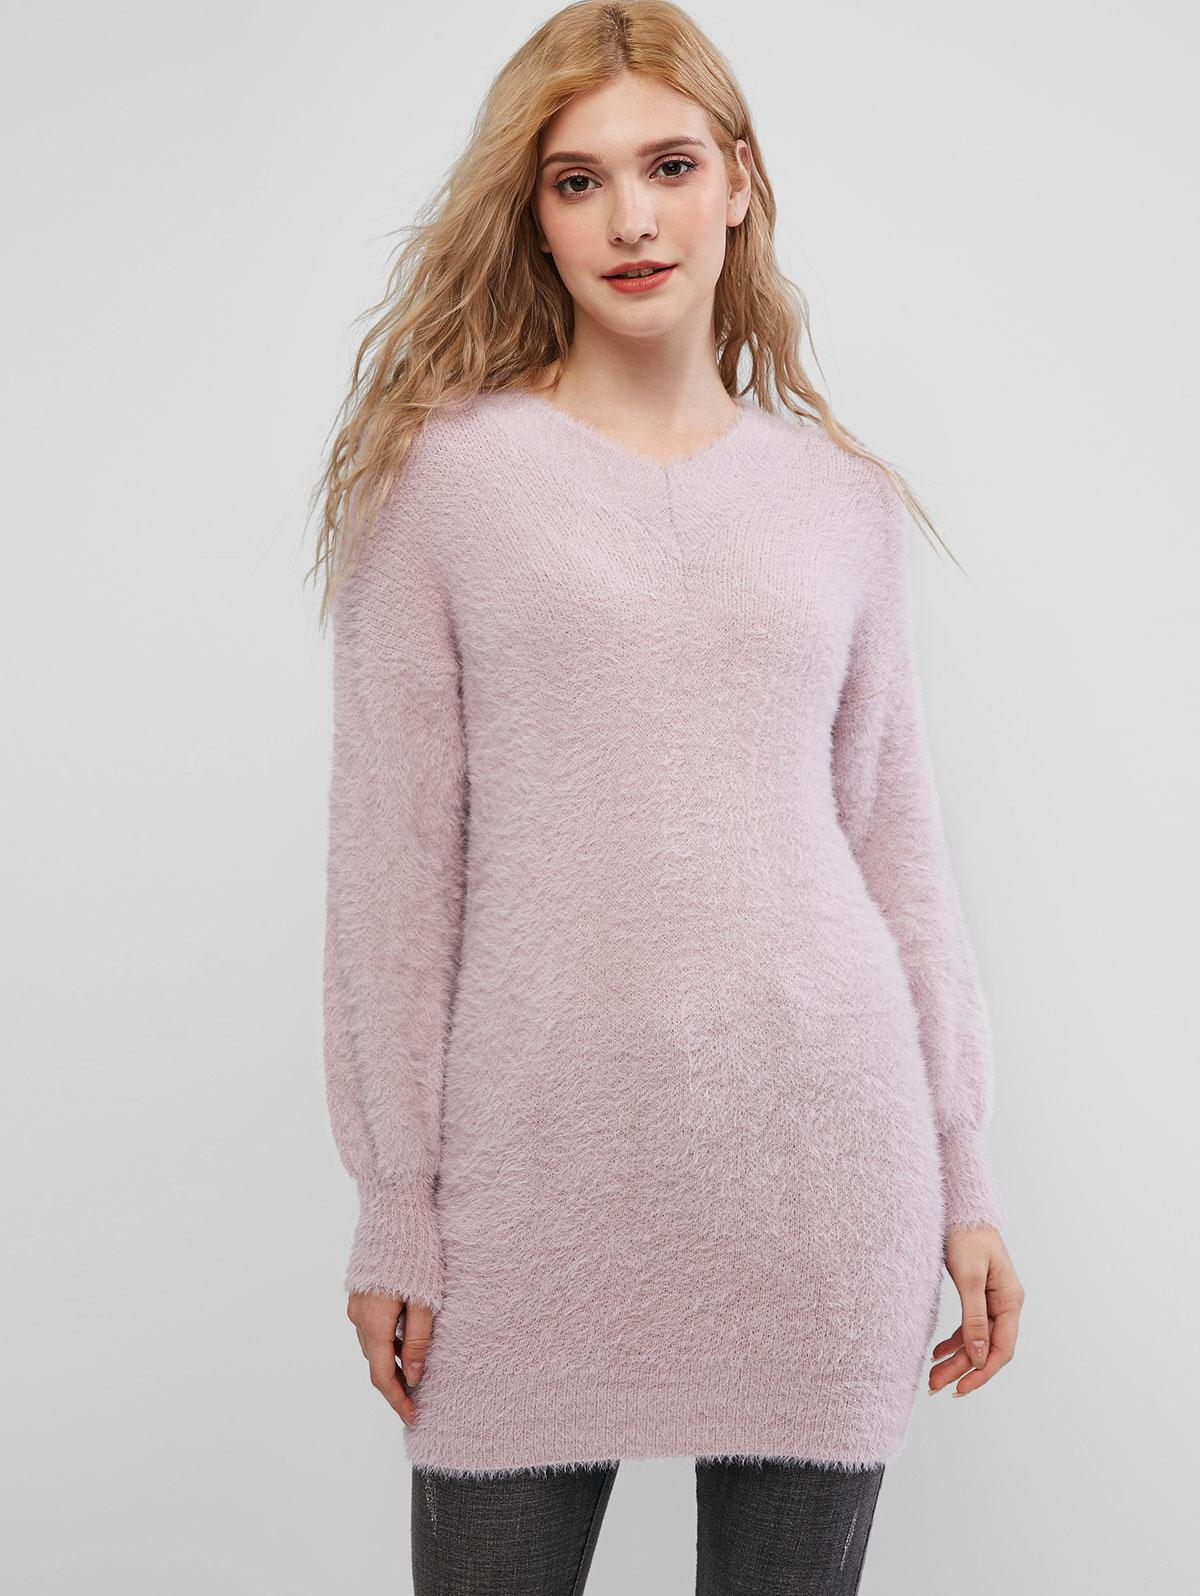 Drop Shoulder Fuzzy Tunic Knit Sweater